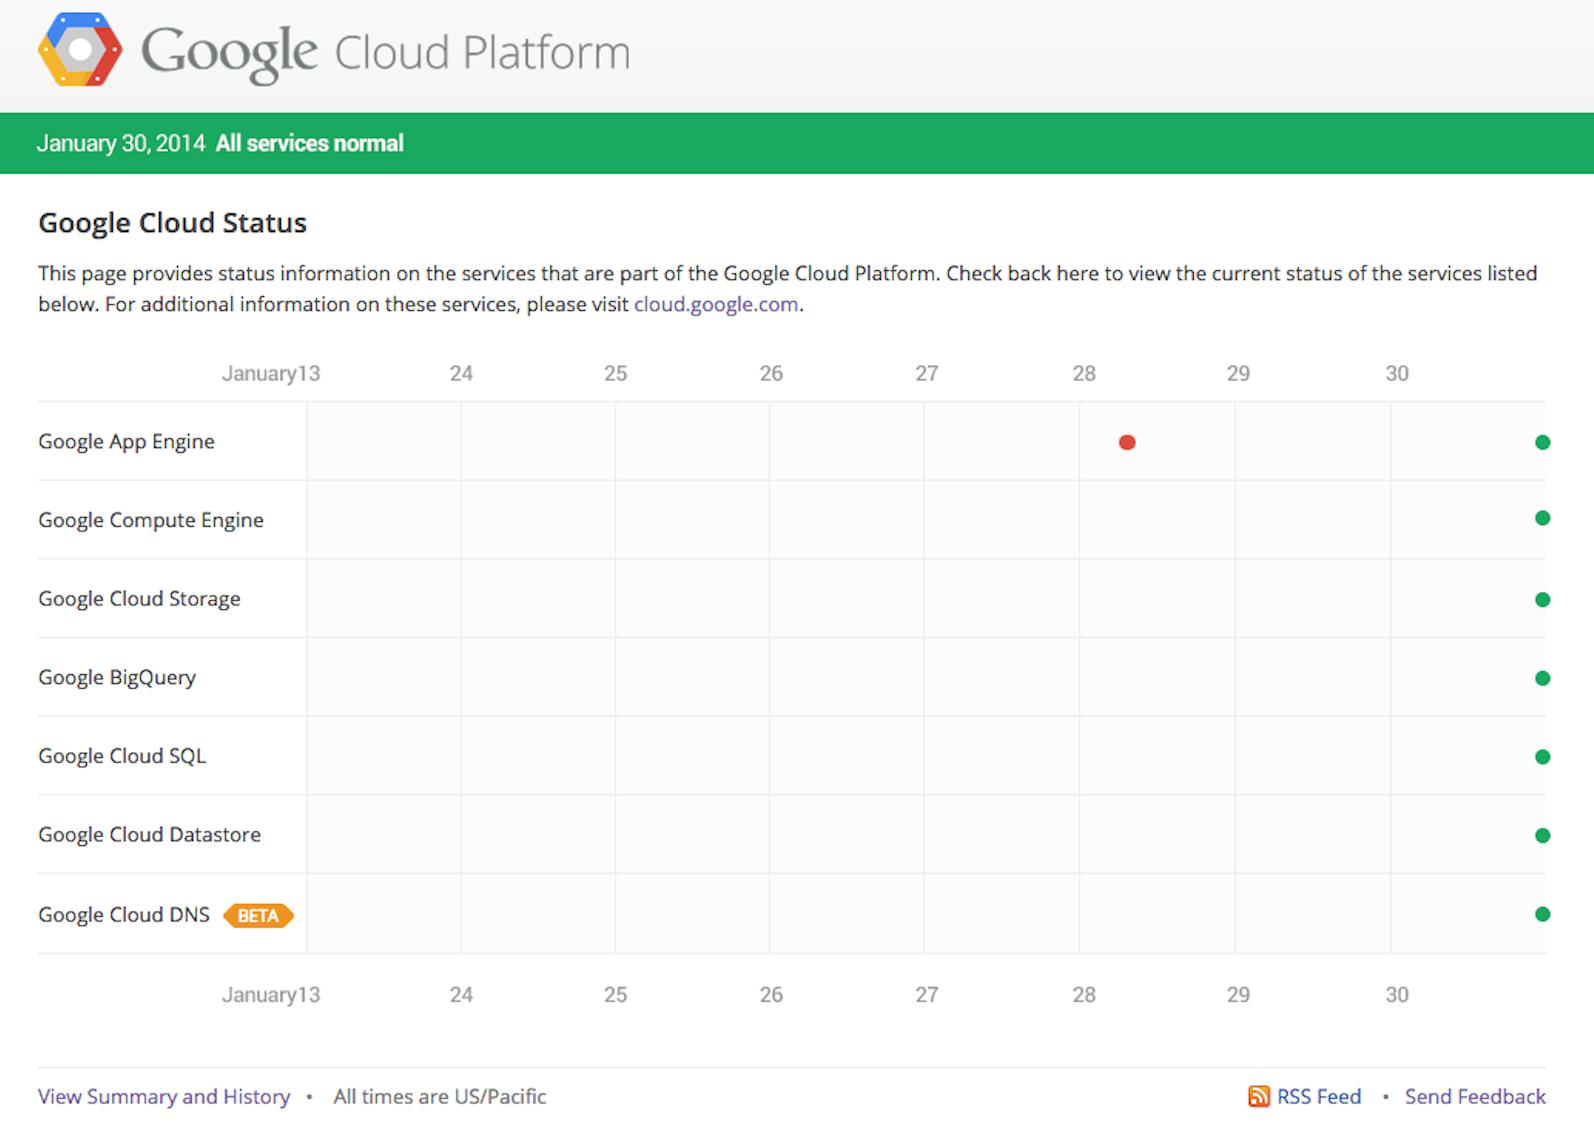 Google Cloud Platform getting its own status dashboard